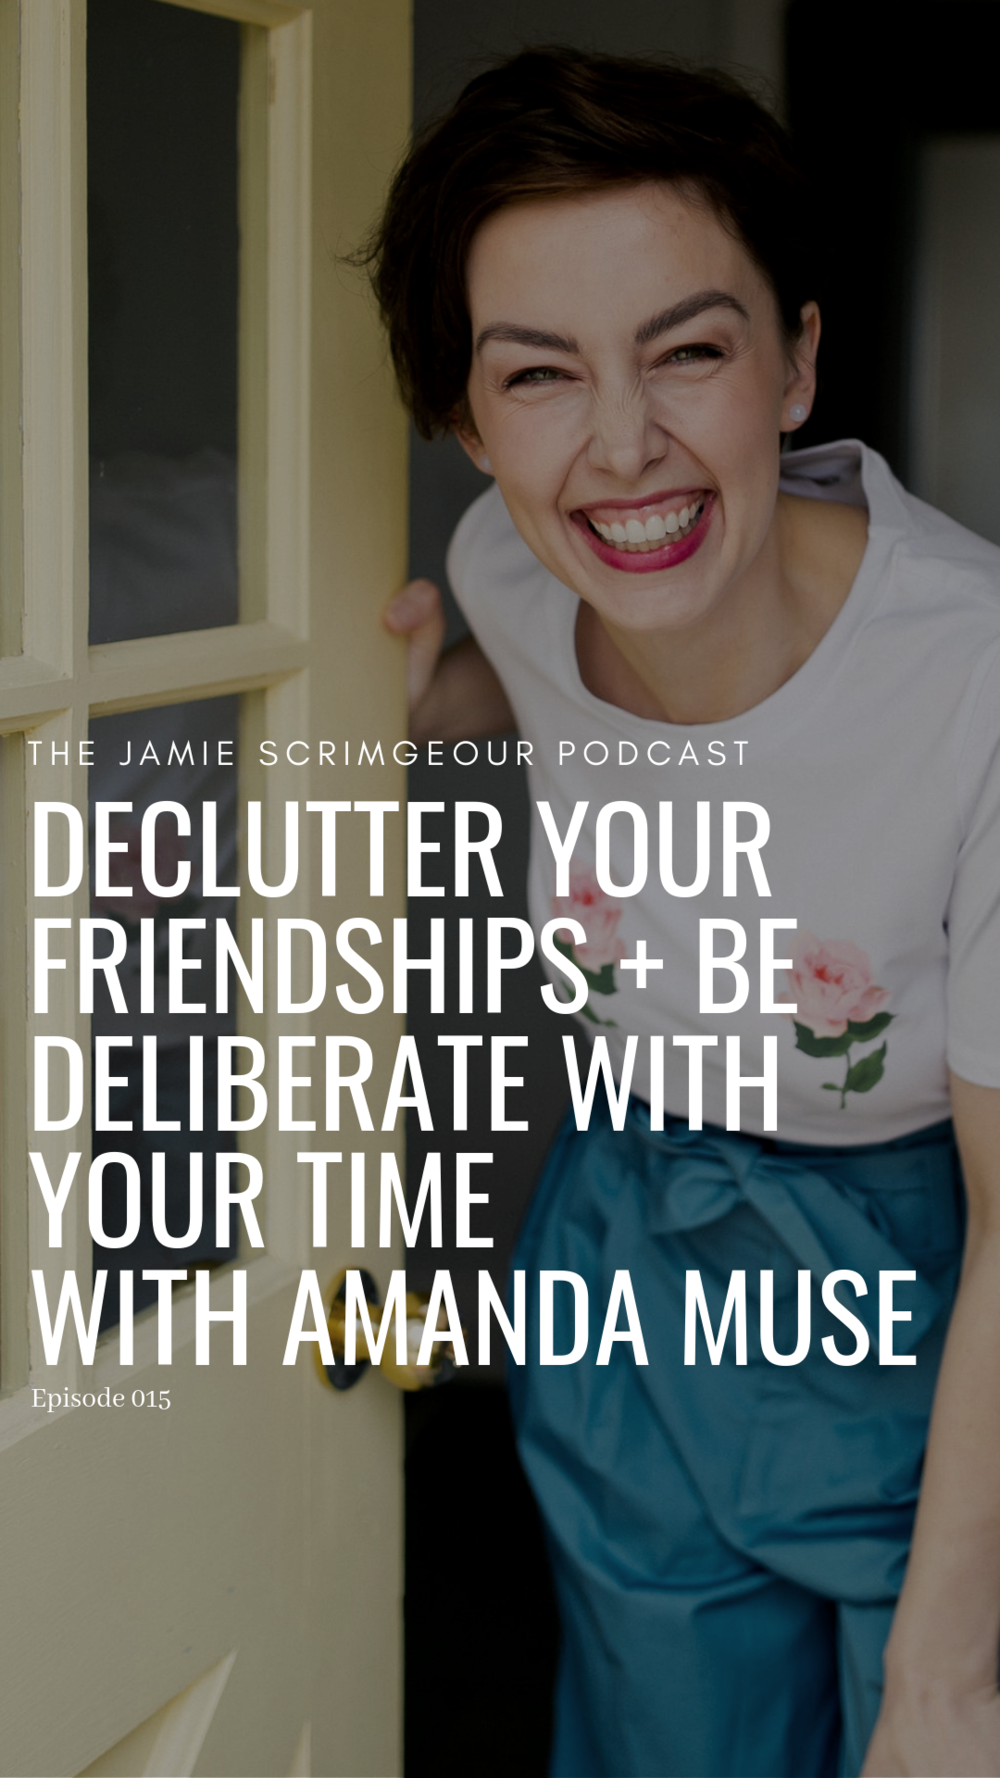 The Jamie Scrimgeour Podcast - Amanda Muse